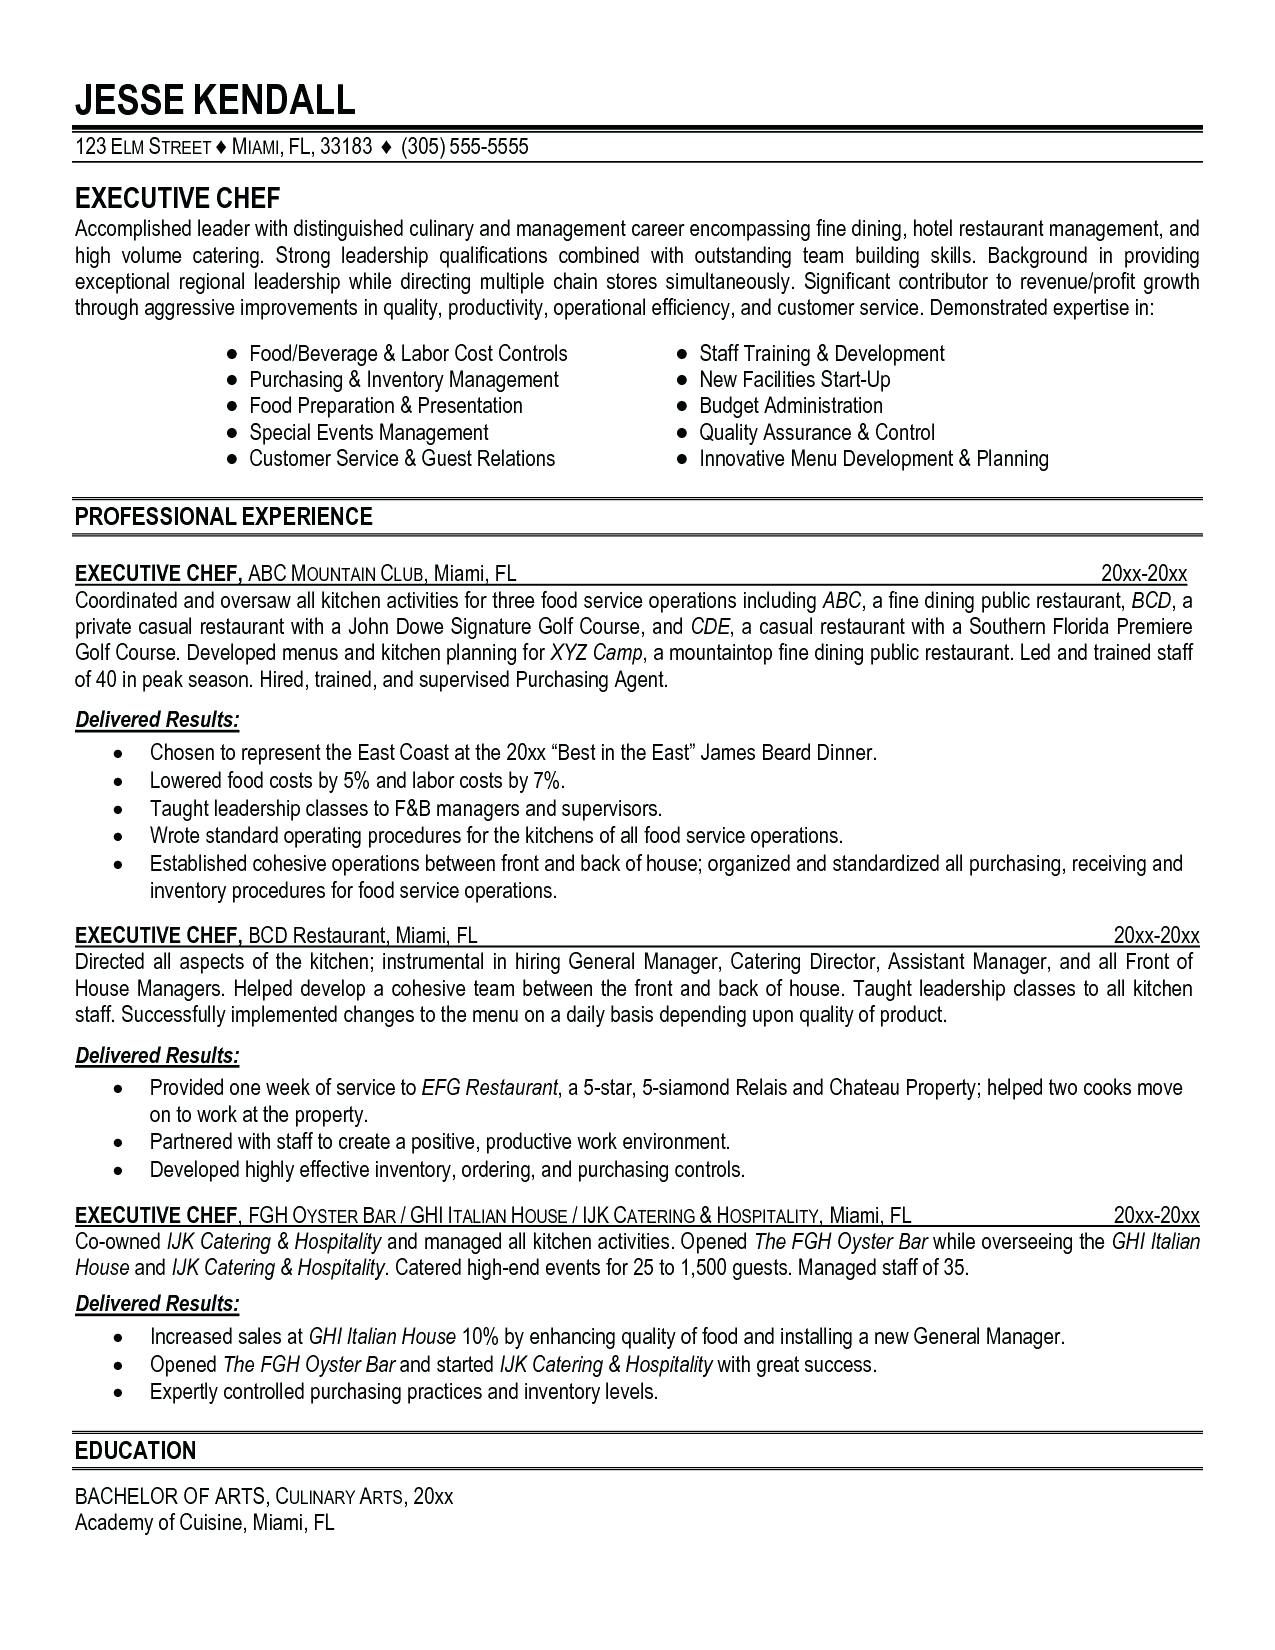 resume template blue Professional in 2020 Sample resume